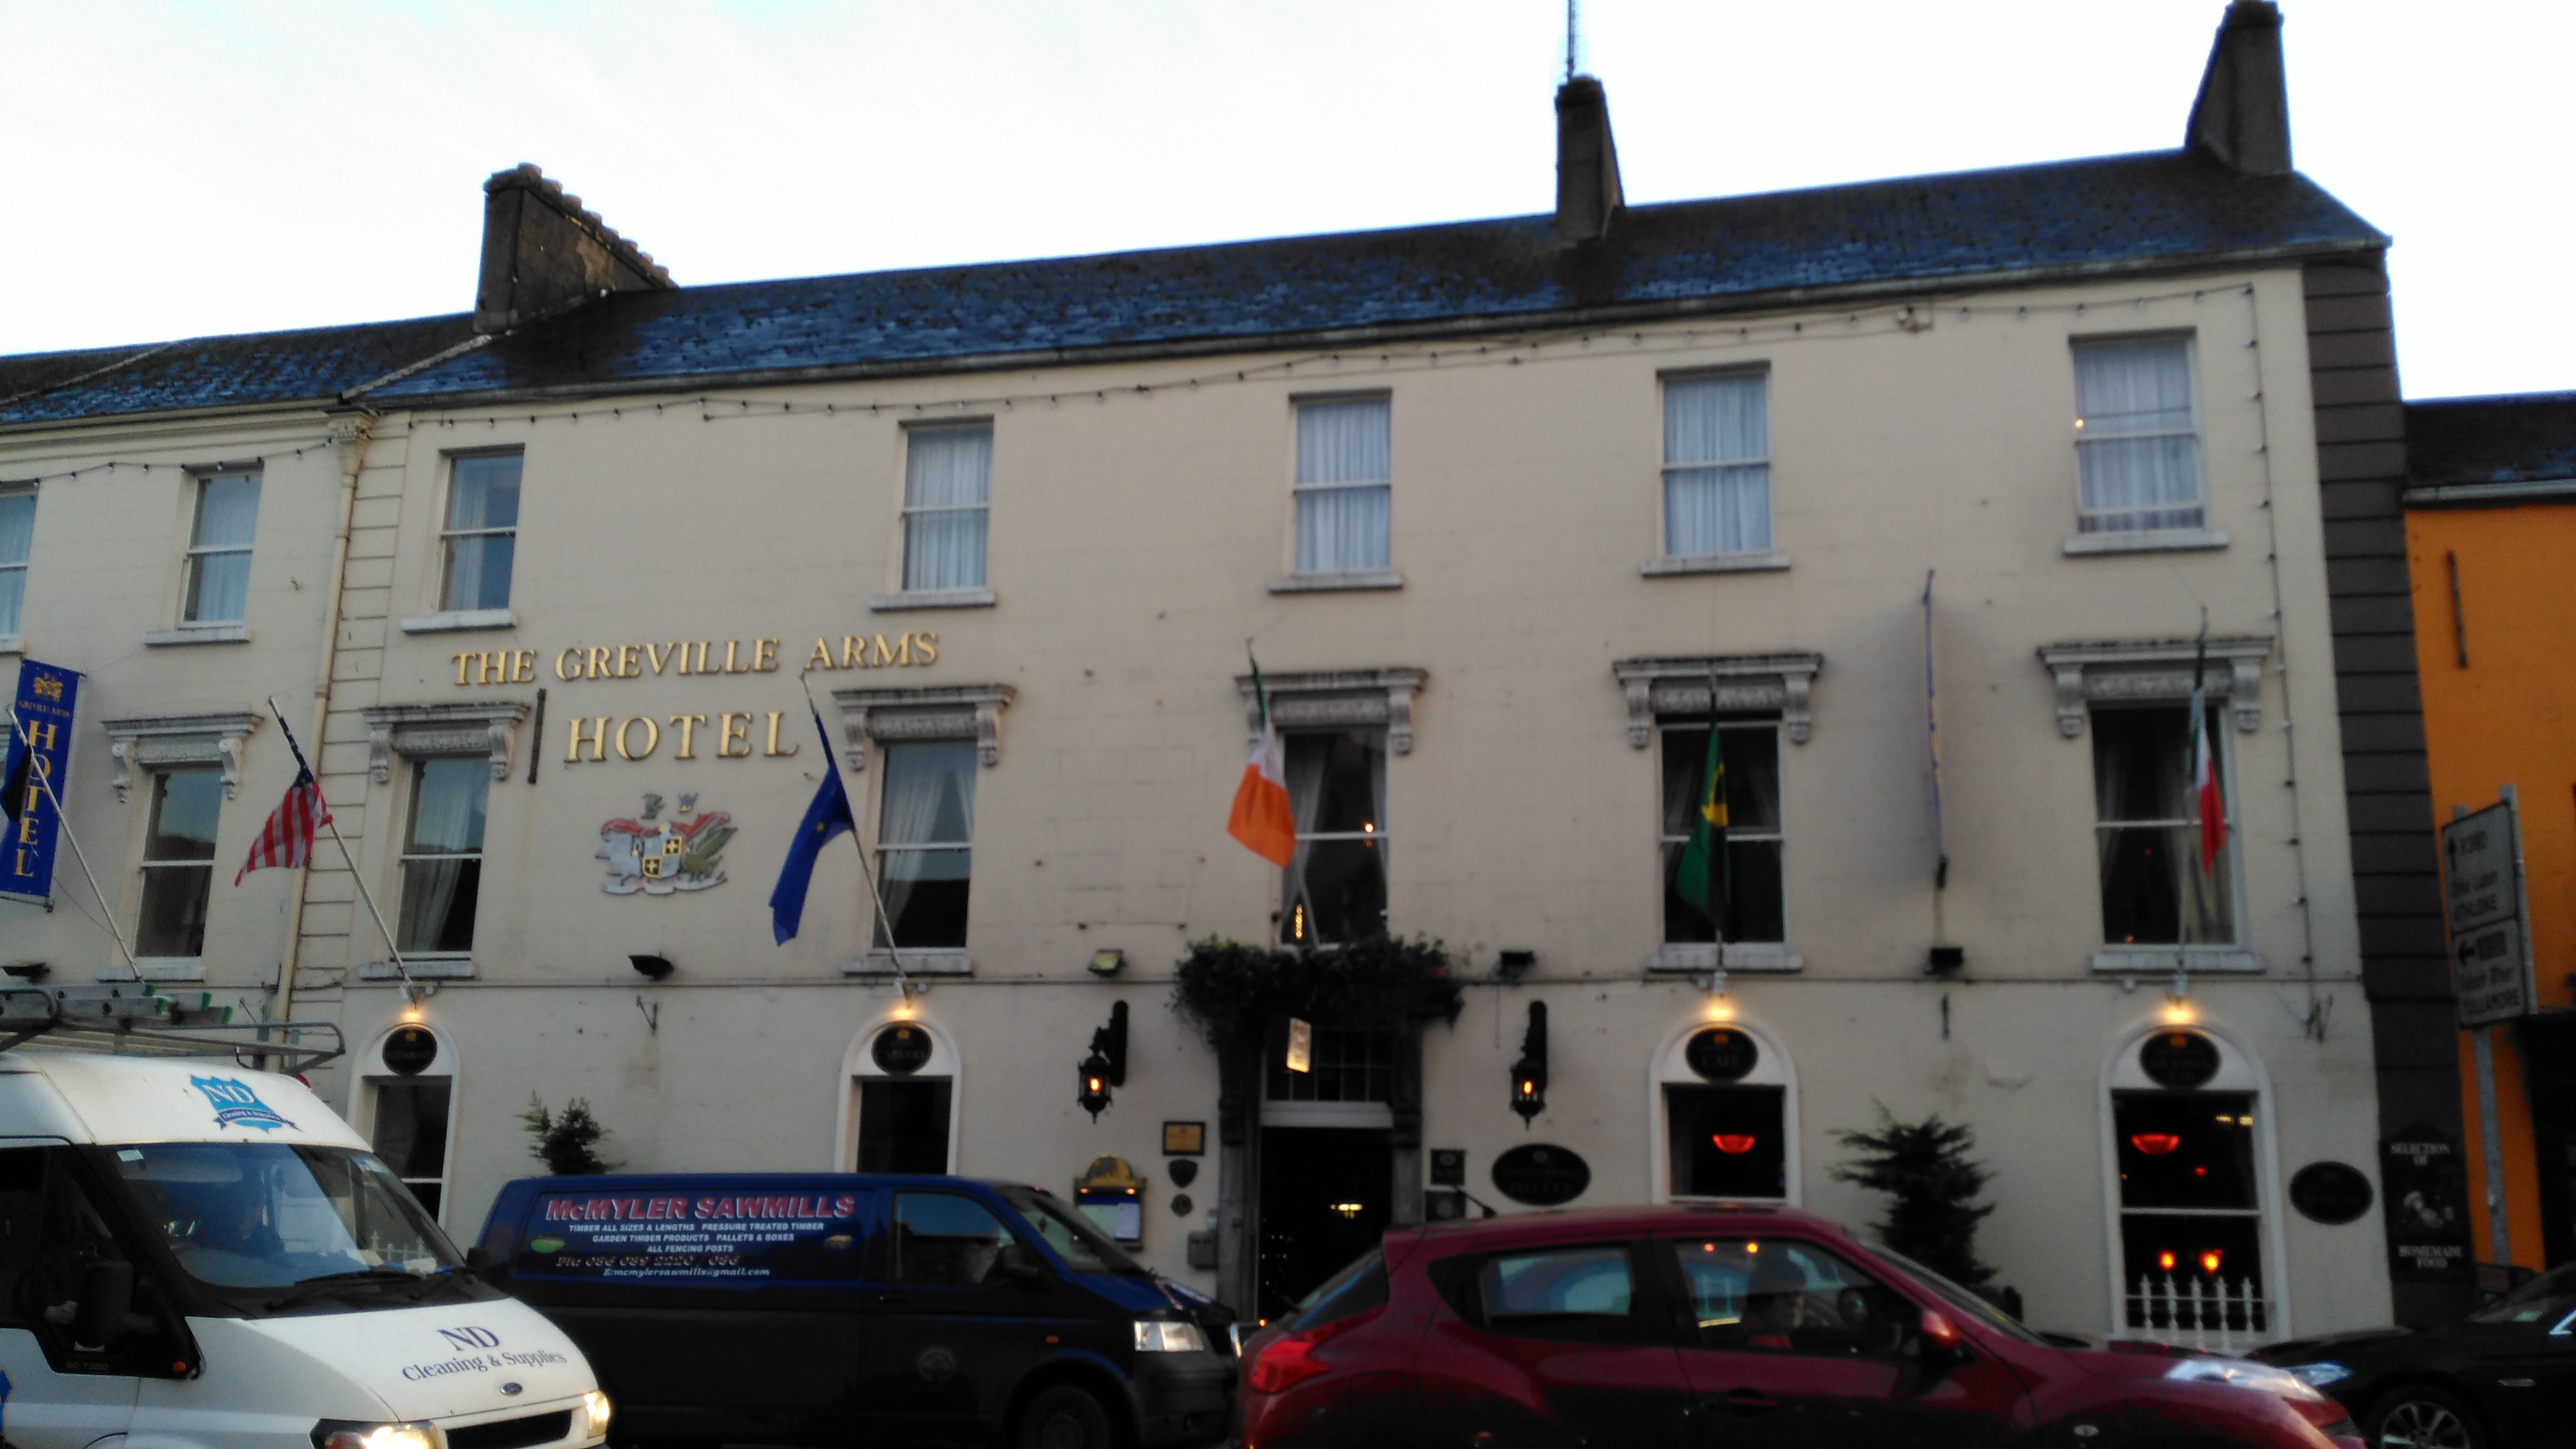 dating mullingar Mullingar pewter the ancient craft of pewter making was revived in ireland by paddy collins in mullingar in 1974 paddy's son peter now runs the business and.